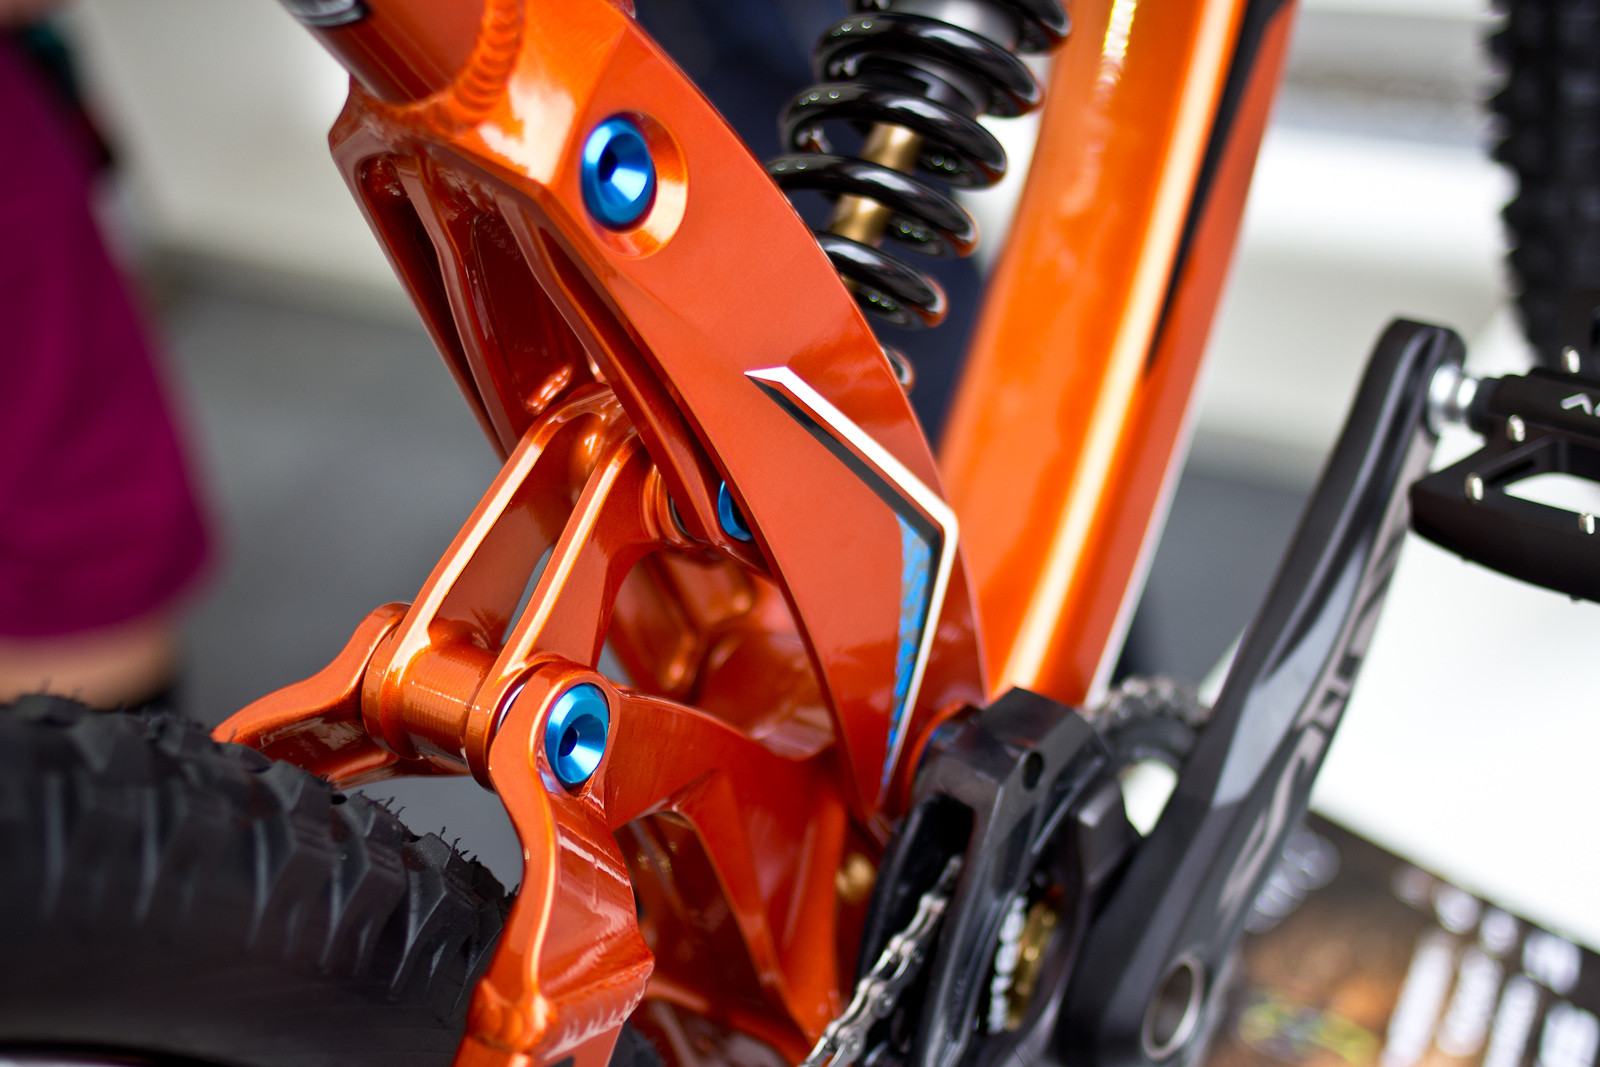 Redesigned 2014 Transition TR450 Prototype DH Bike - 2014 Downhill Bikes at Eurobike 2013 - Mountain Biking Pictures - Vital MTB